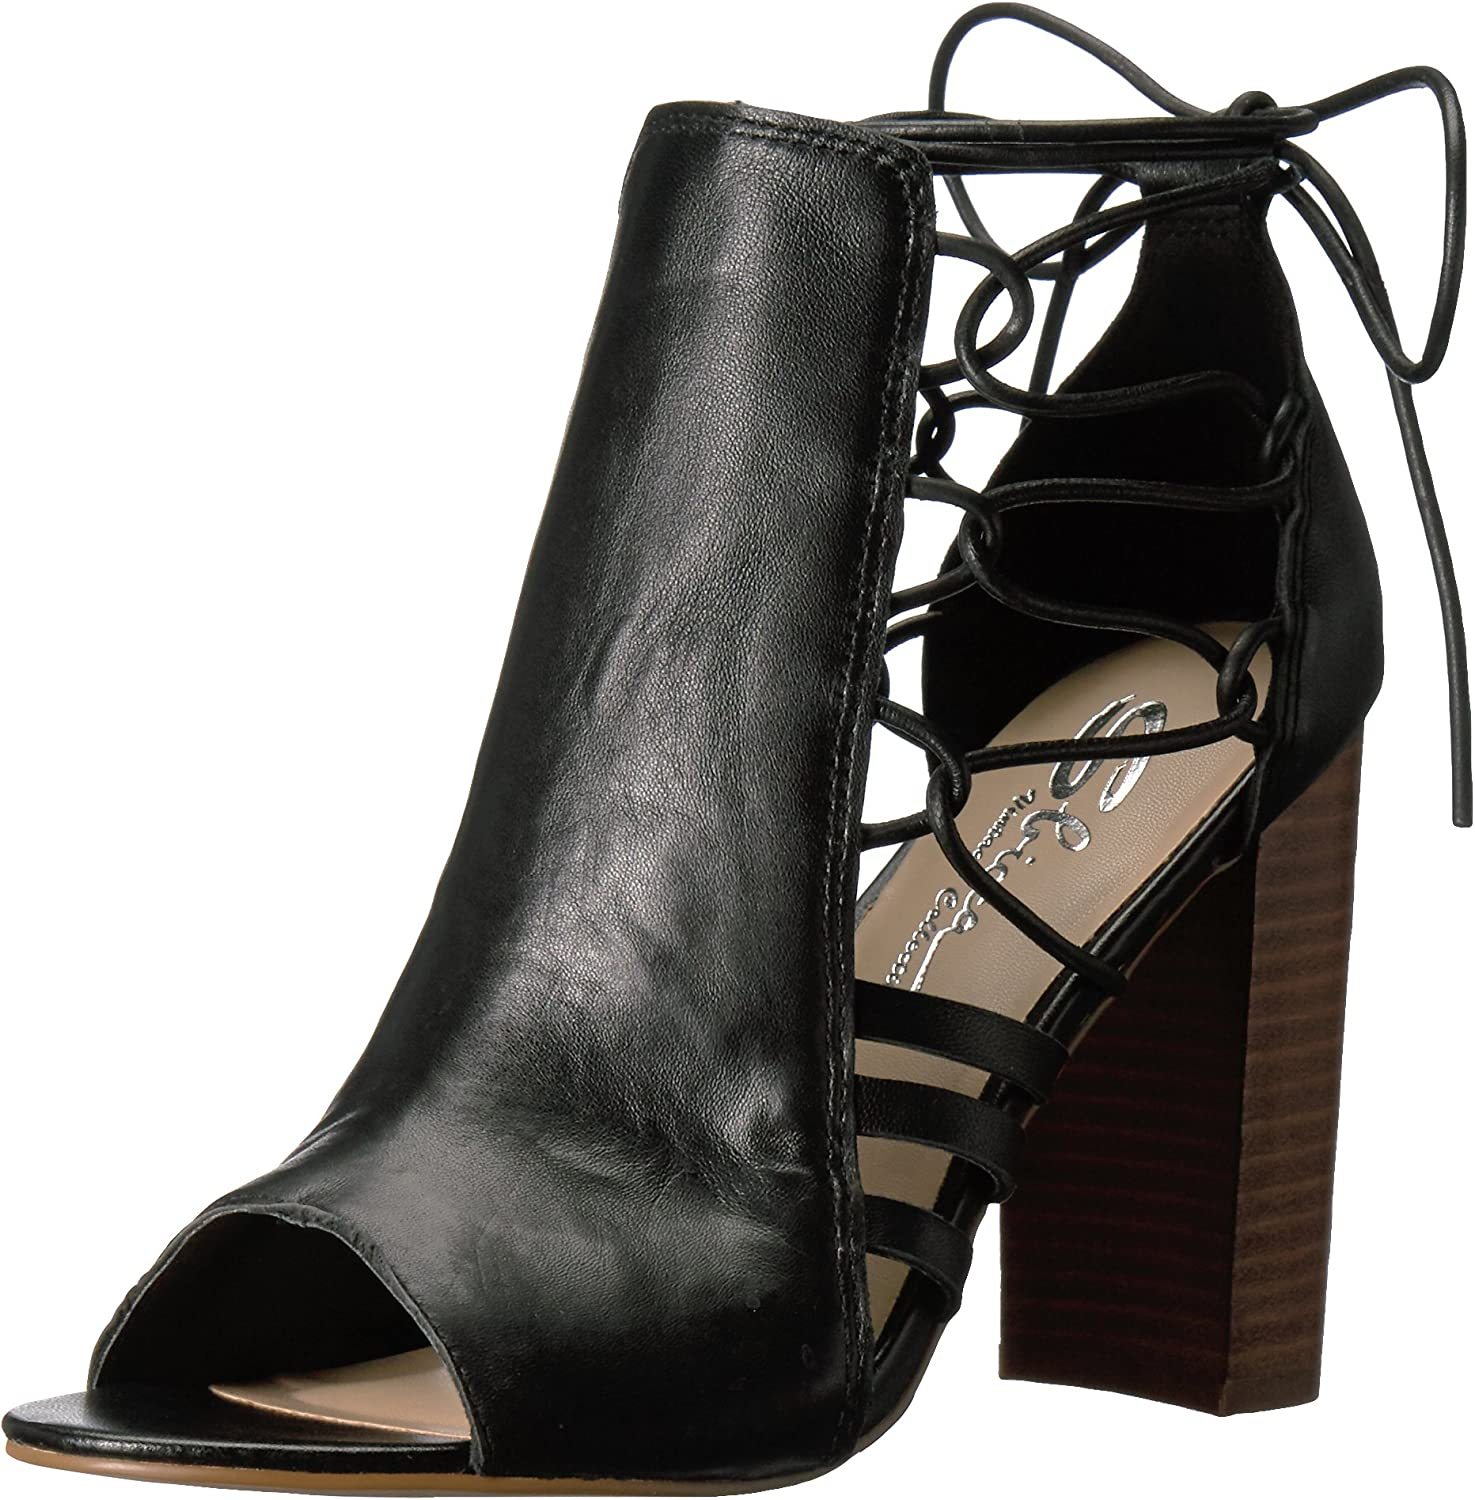 Sbicca Recommendation Women's Shipping included Adette Sandal Dress